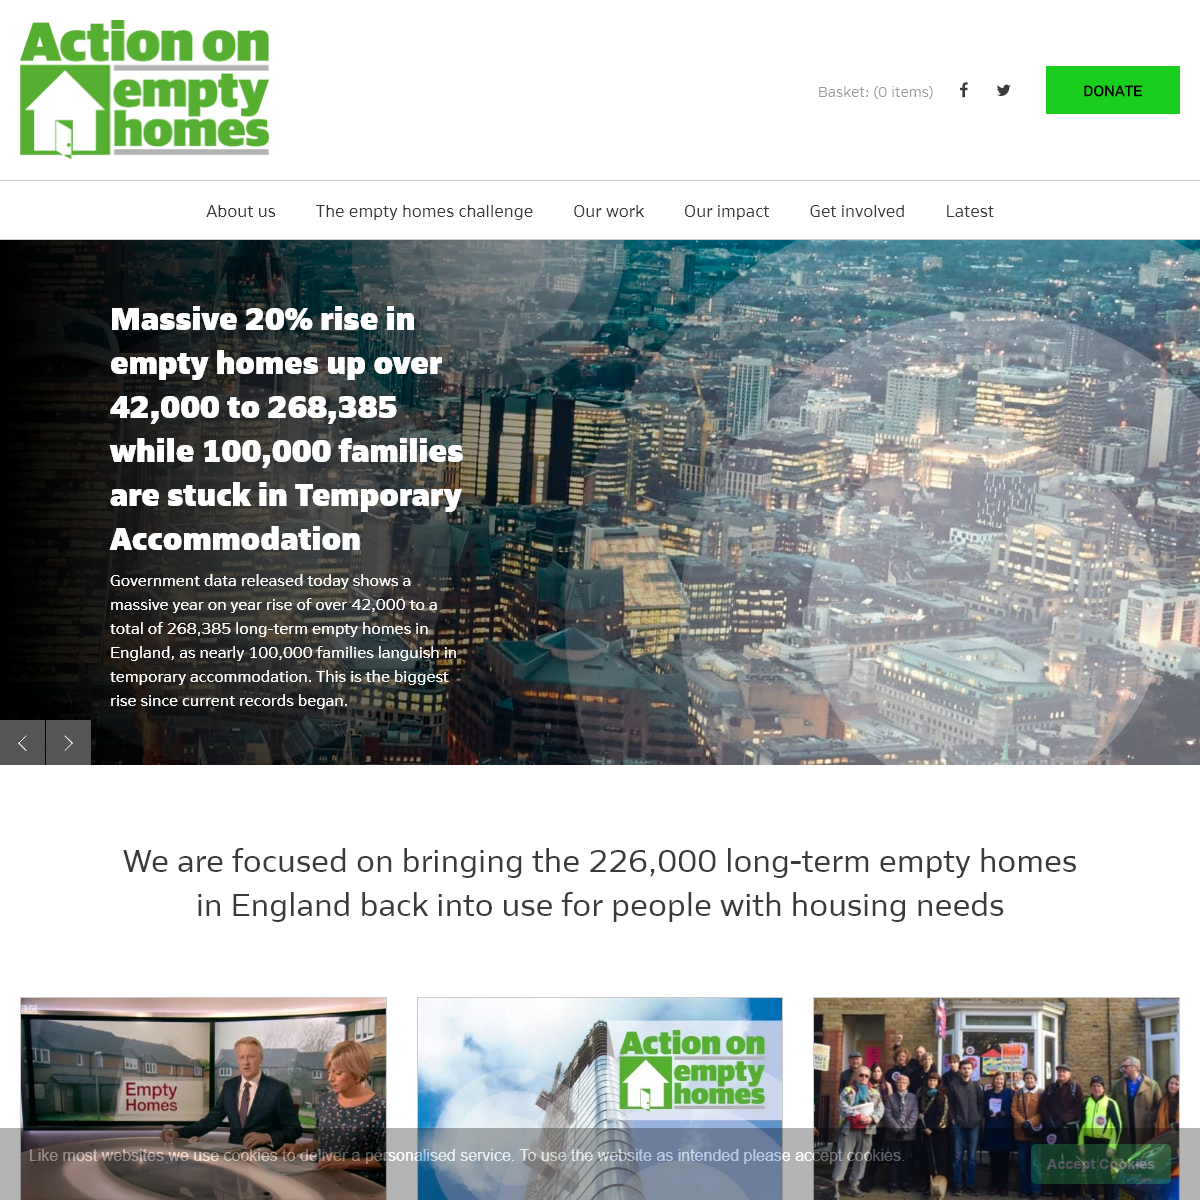 Action on Empty Homes